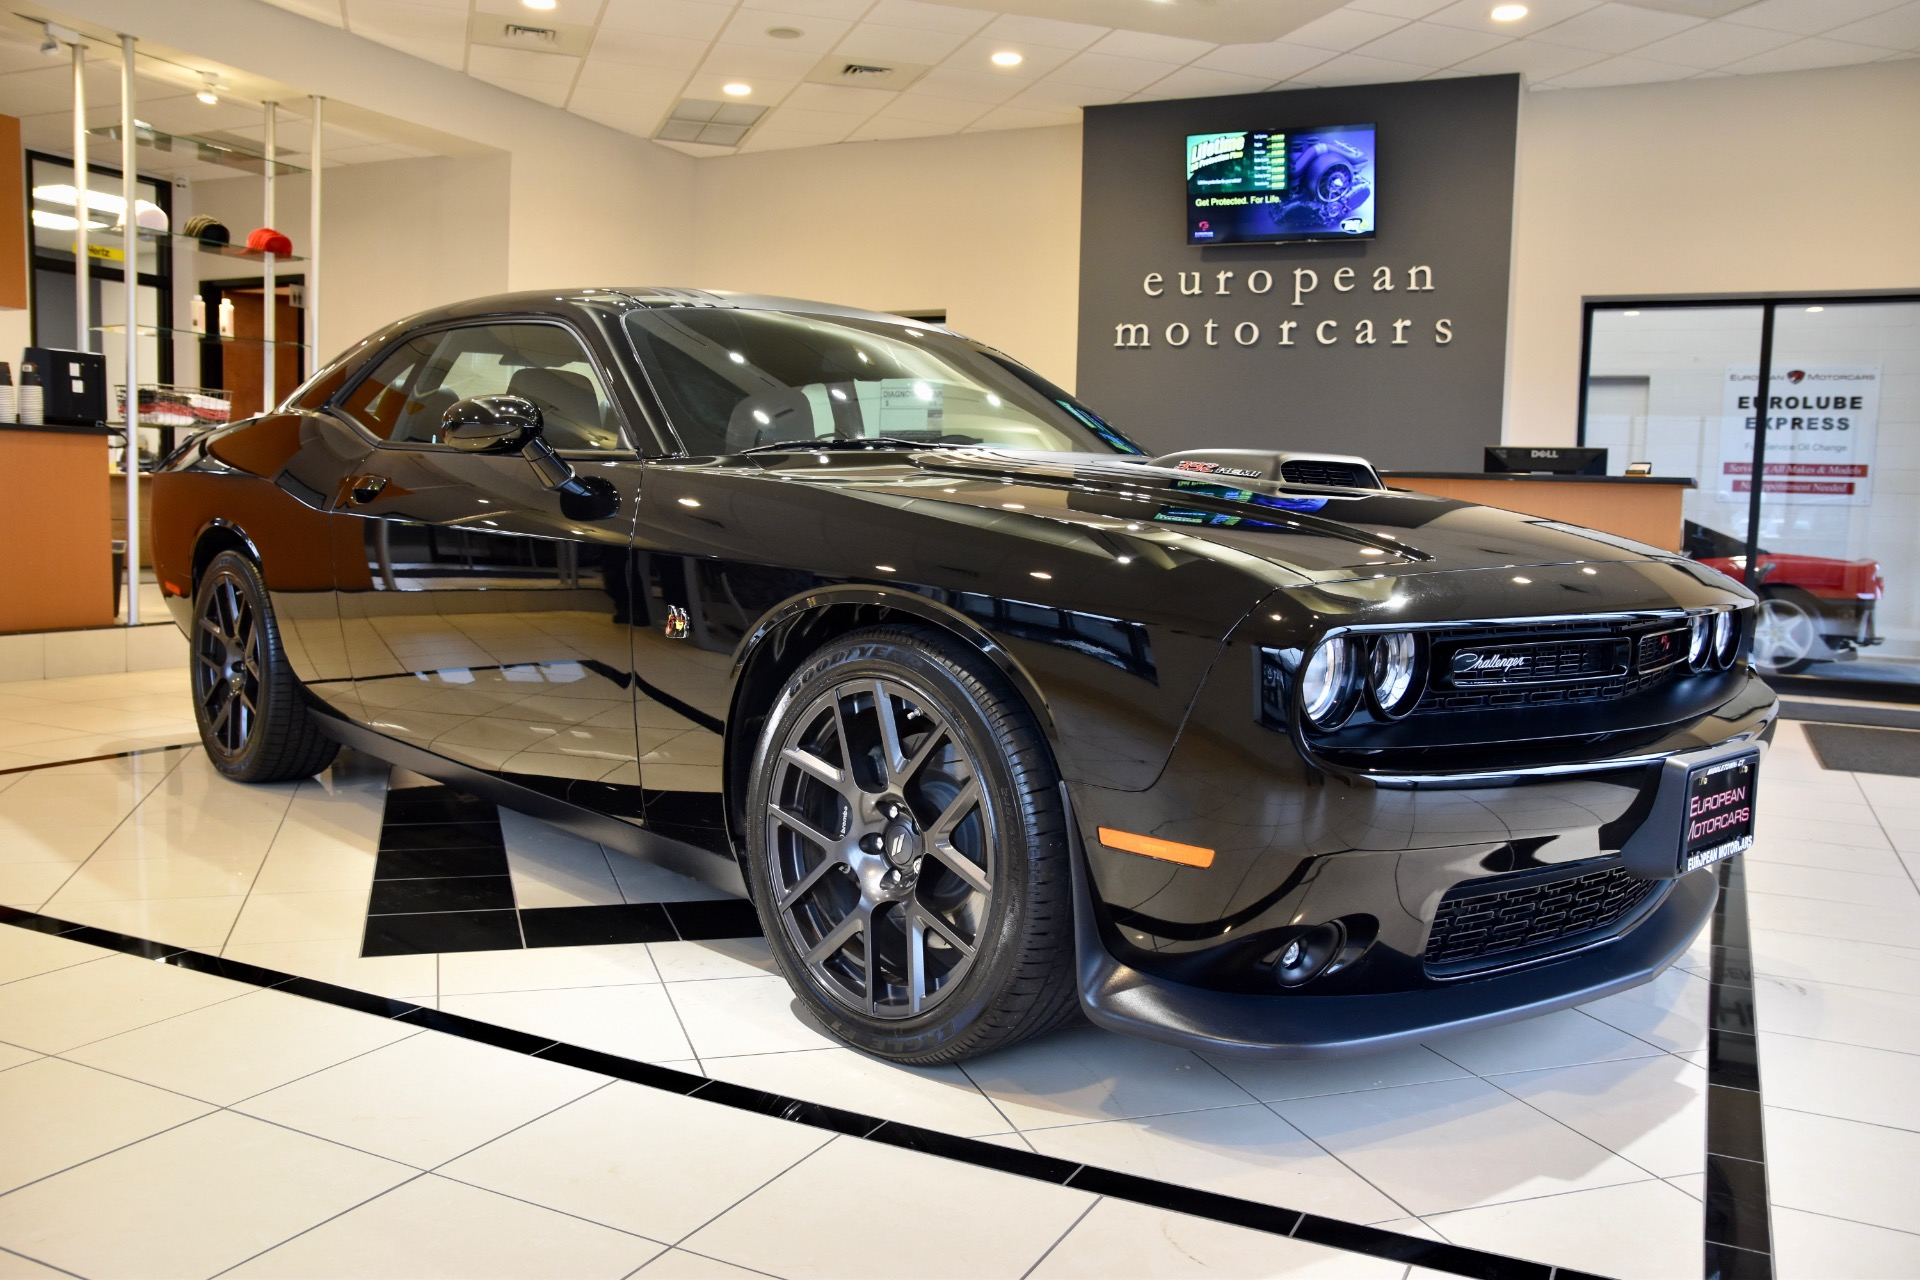 Challenger Shaker For Sale >> 2017 Dodge Challenger R T Scat Pack Shaker 392 For Sale Near